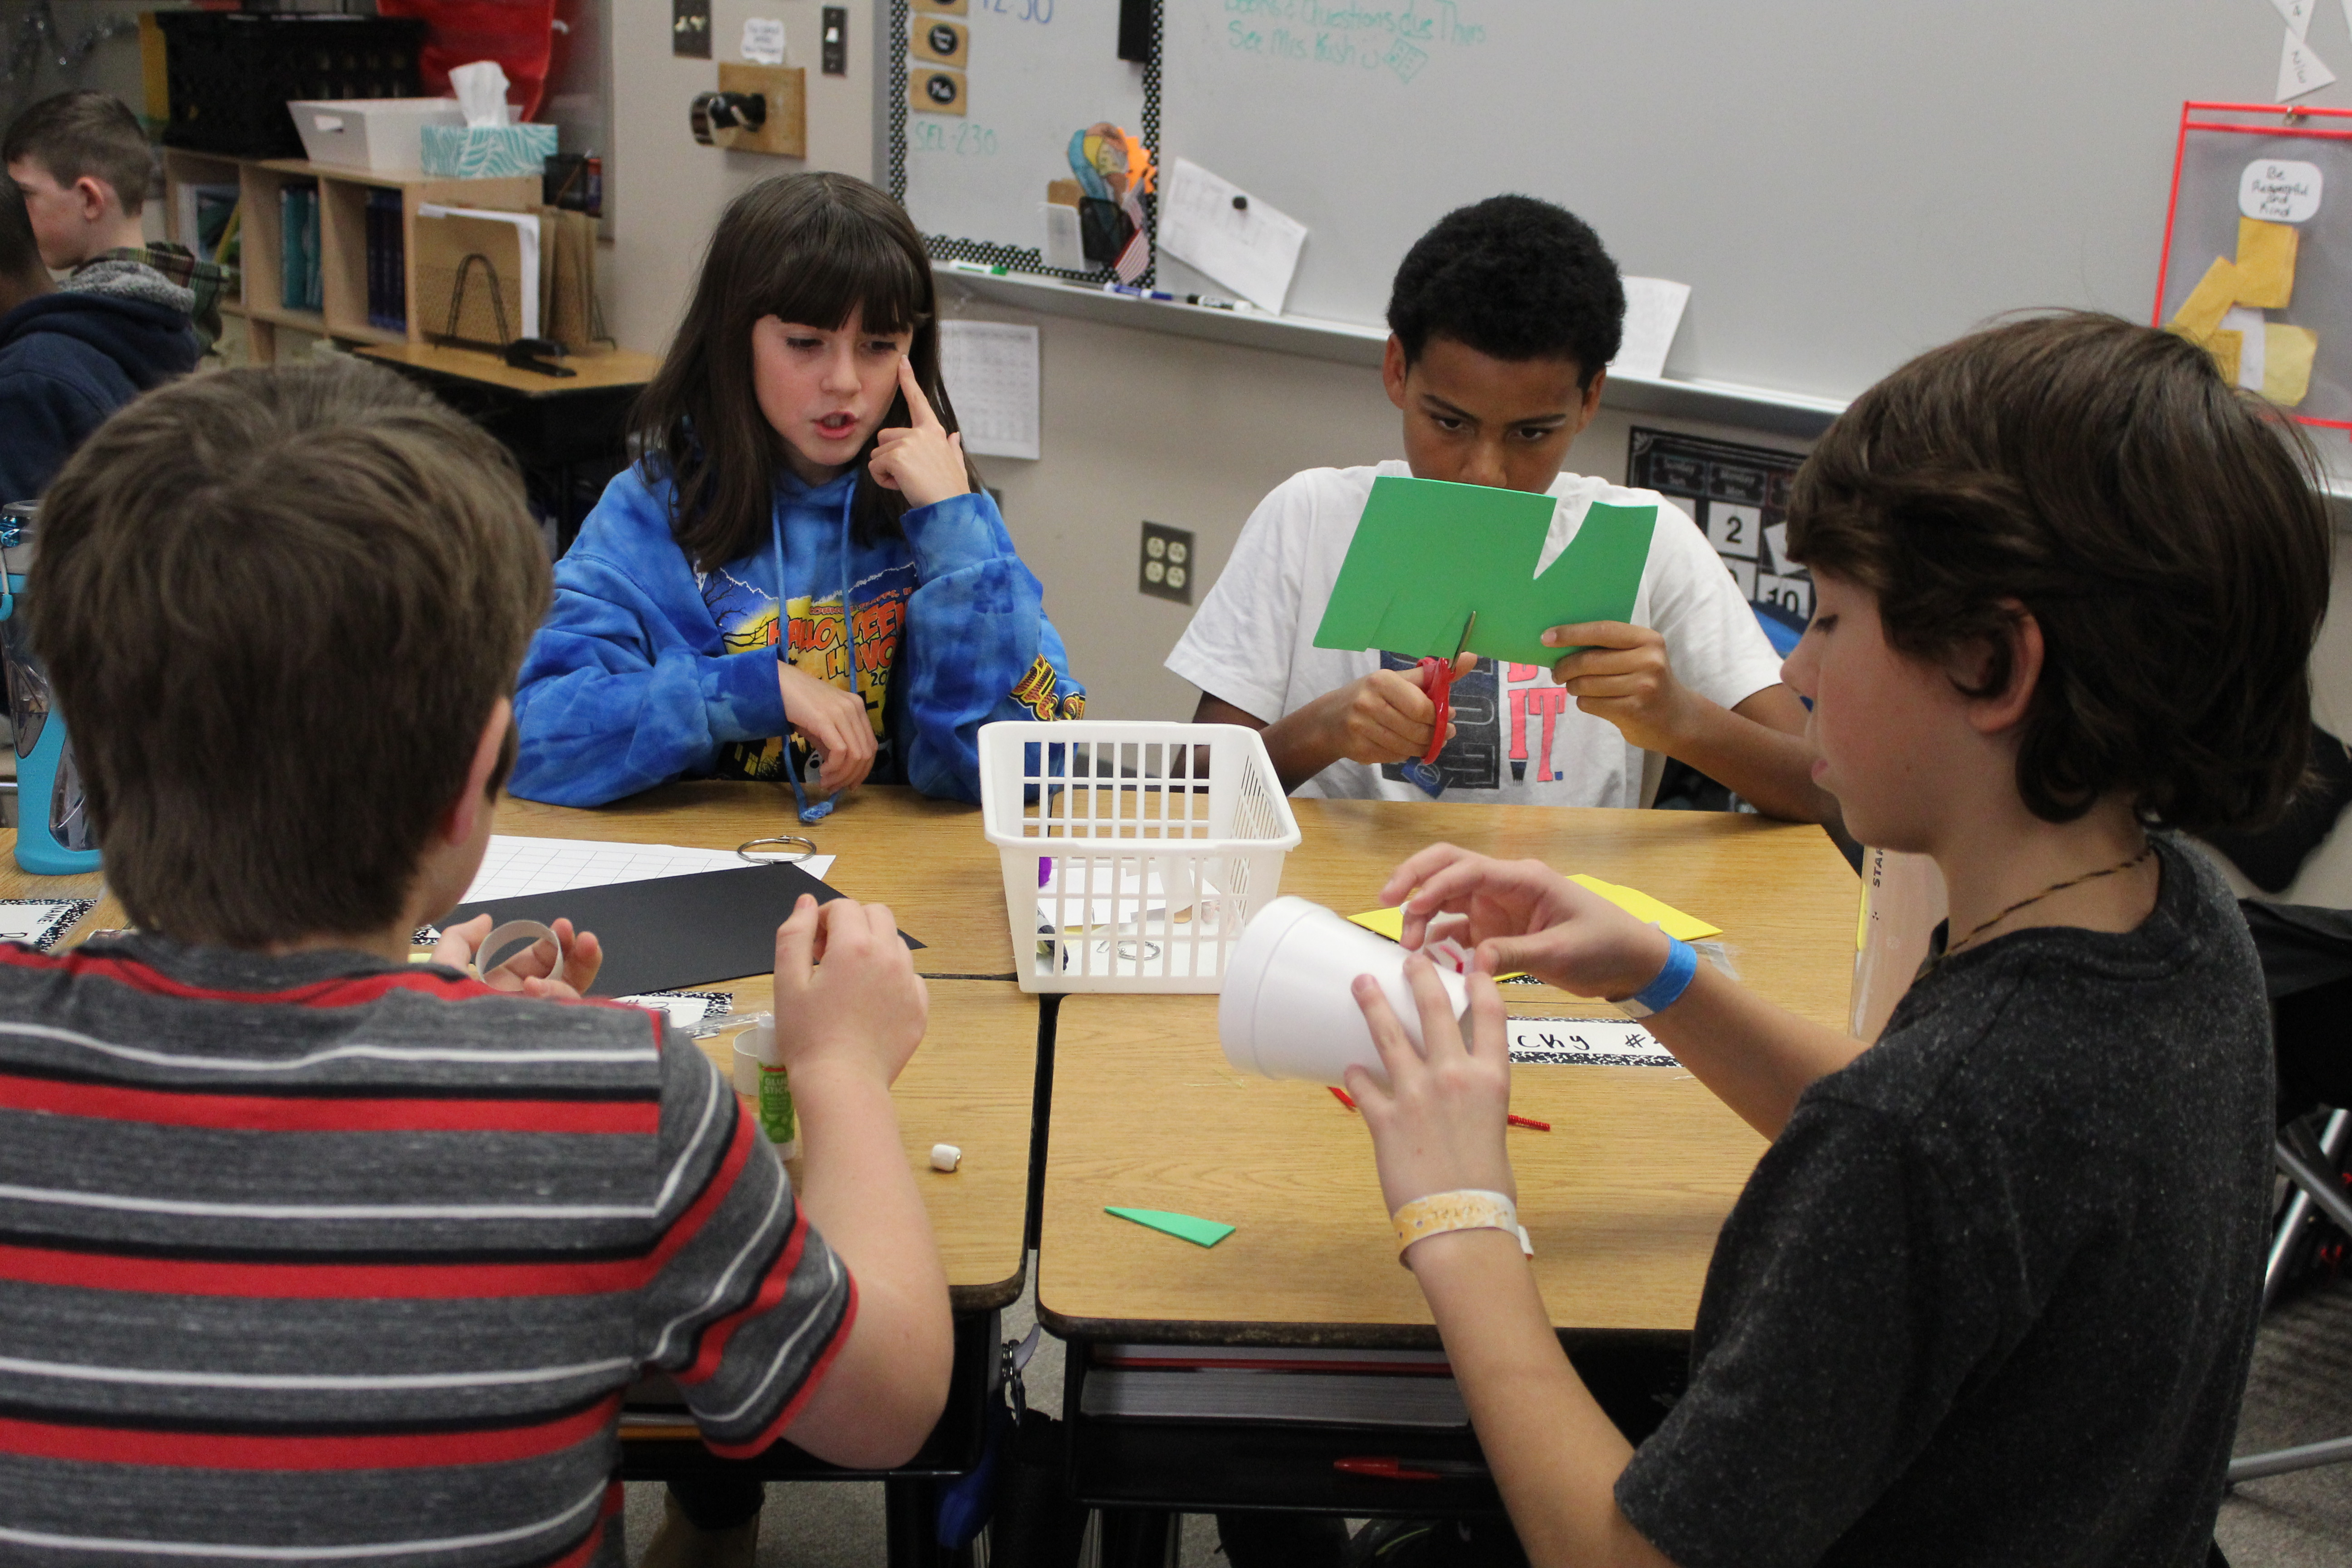 Rumsey Station Elementary 6th graders build toys before winter break